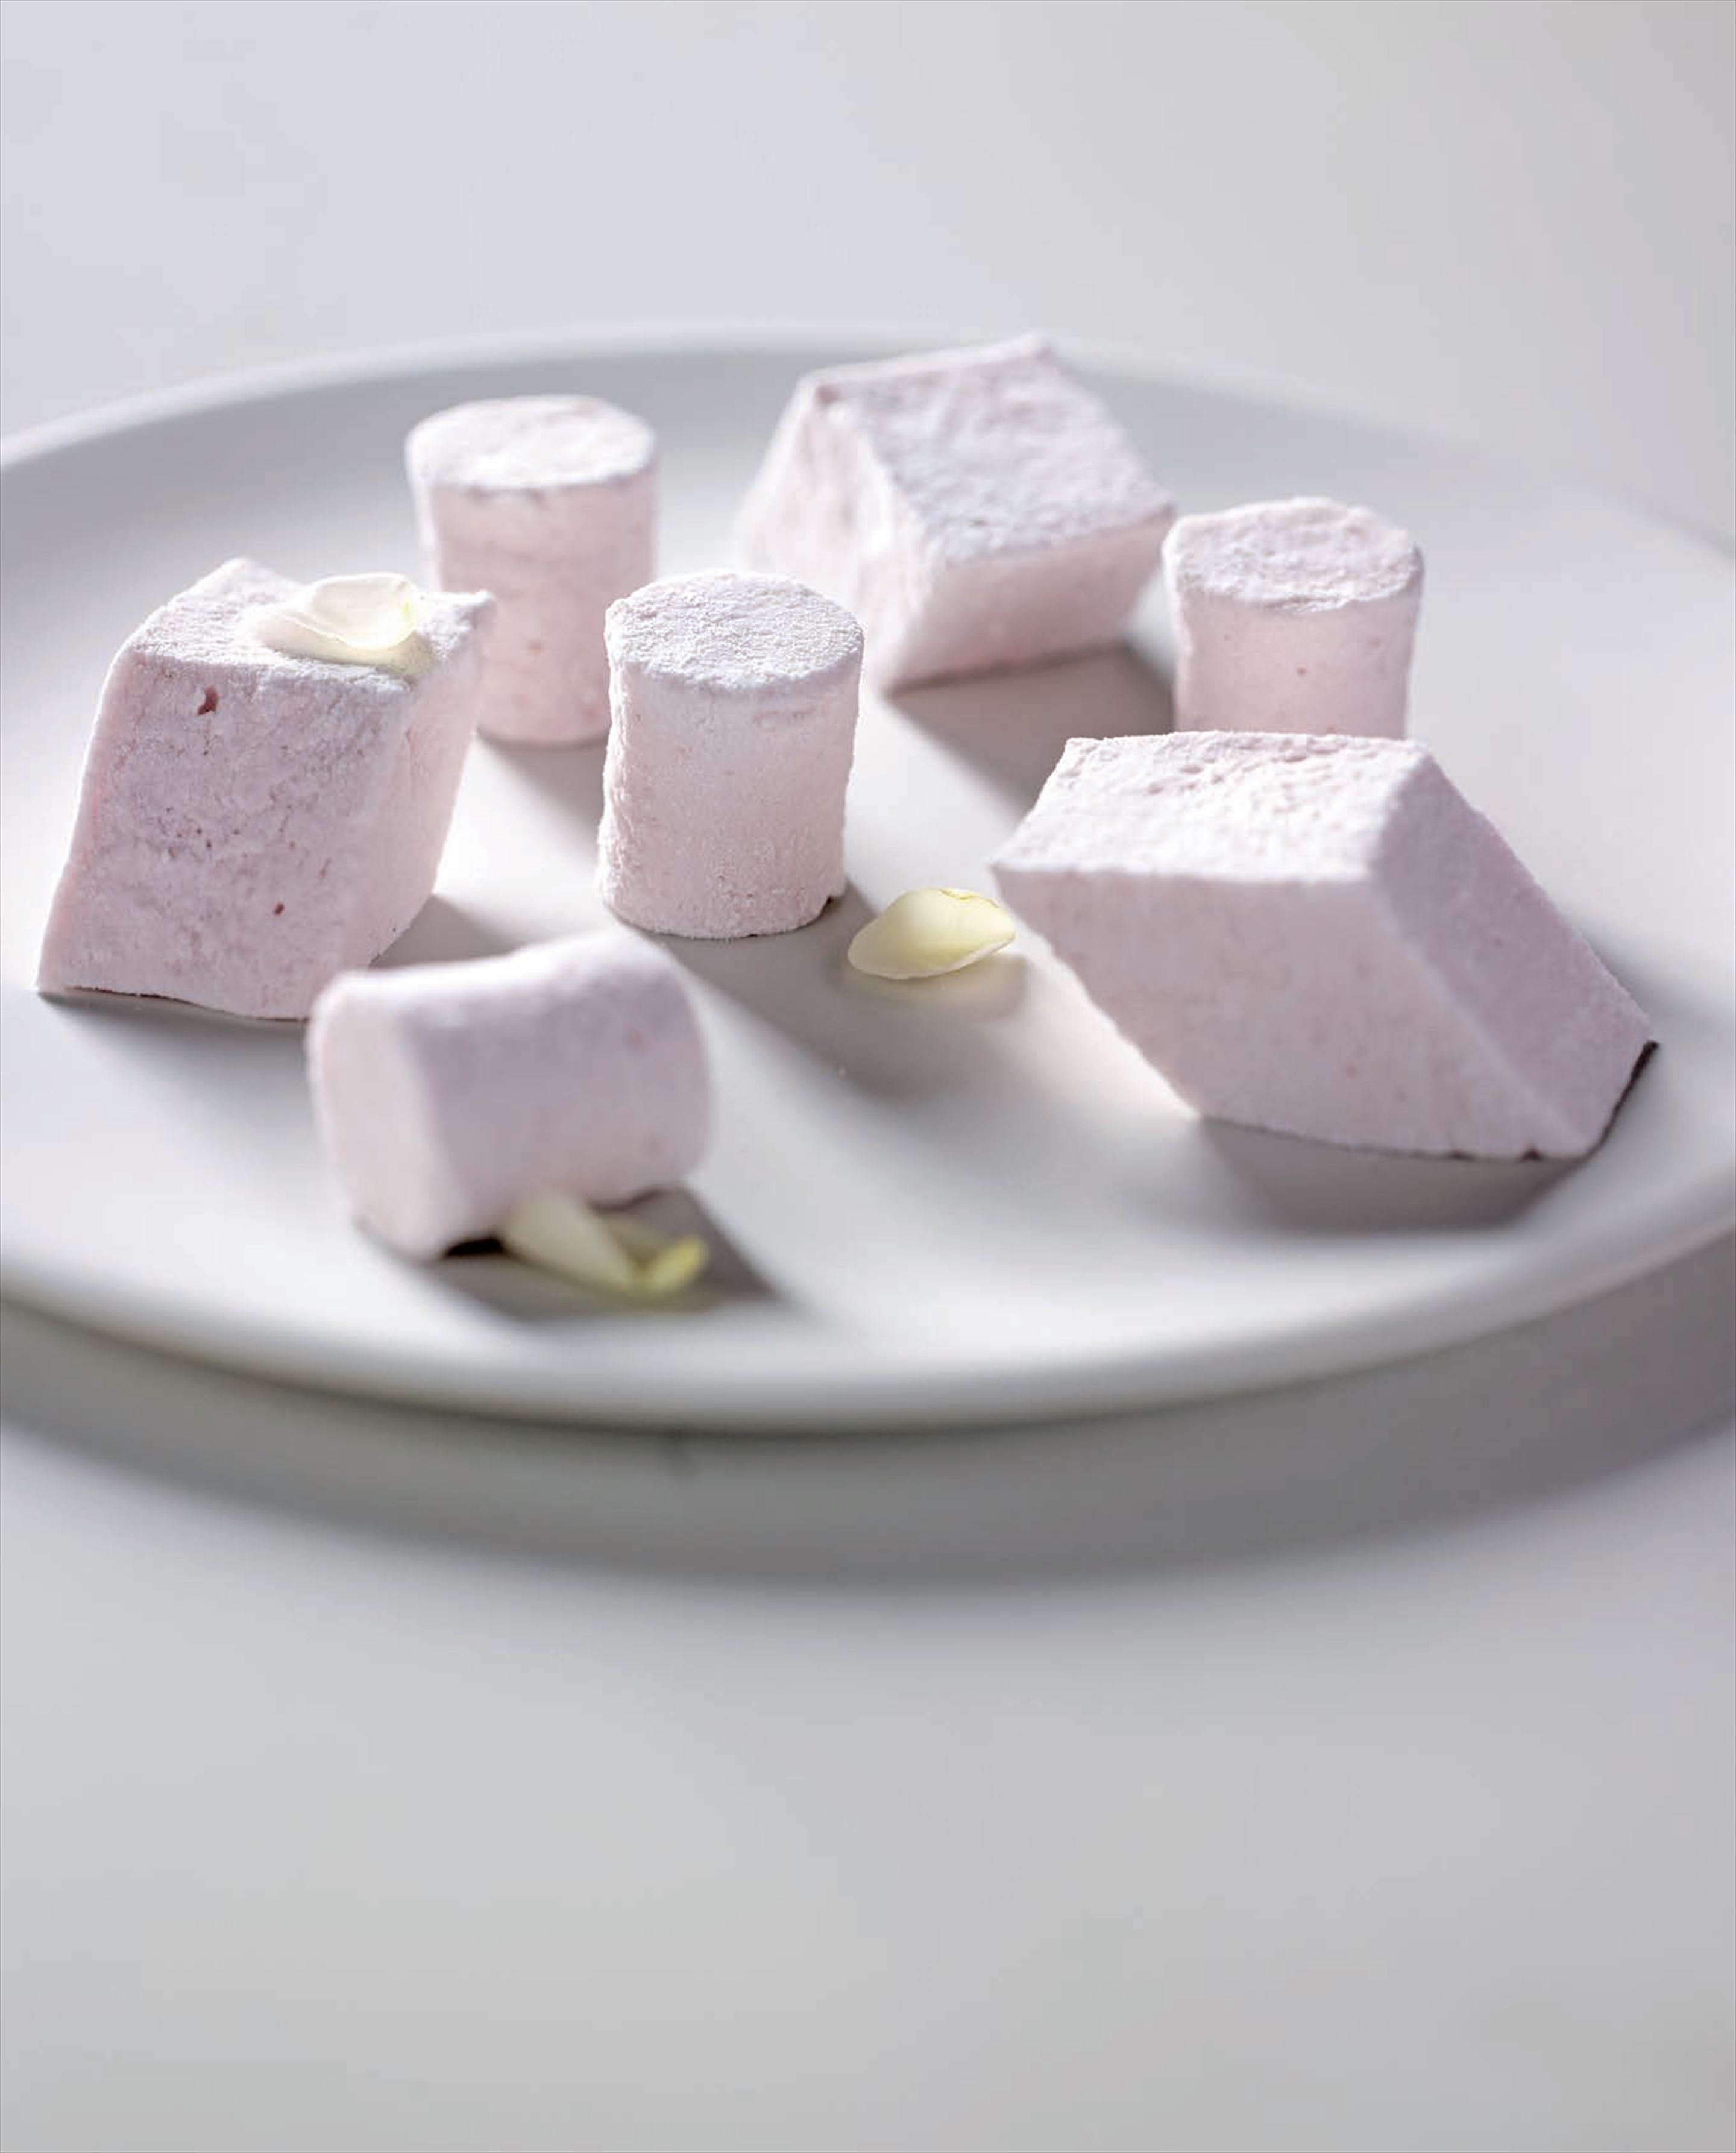 Strawberry–rose marshmallows